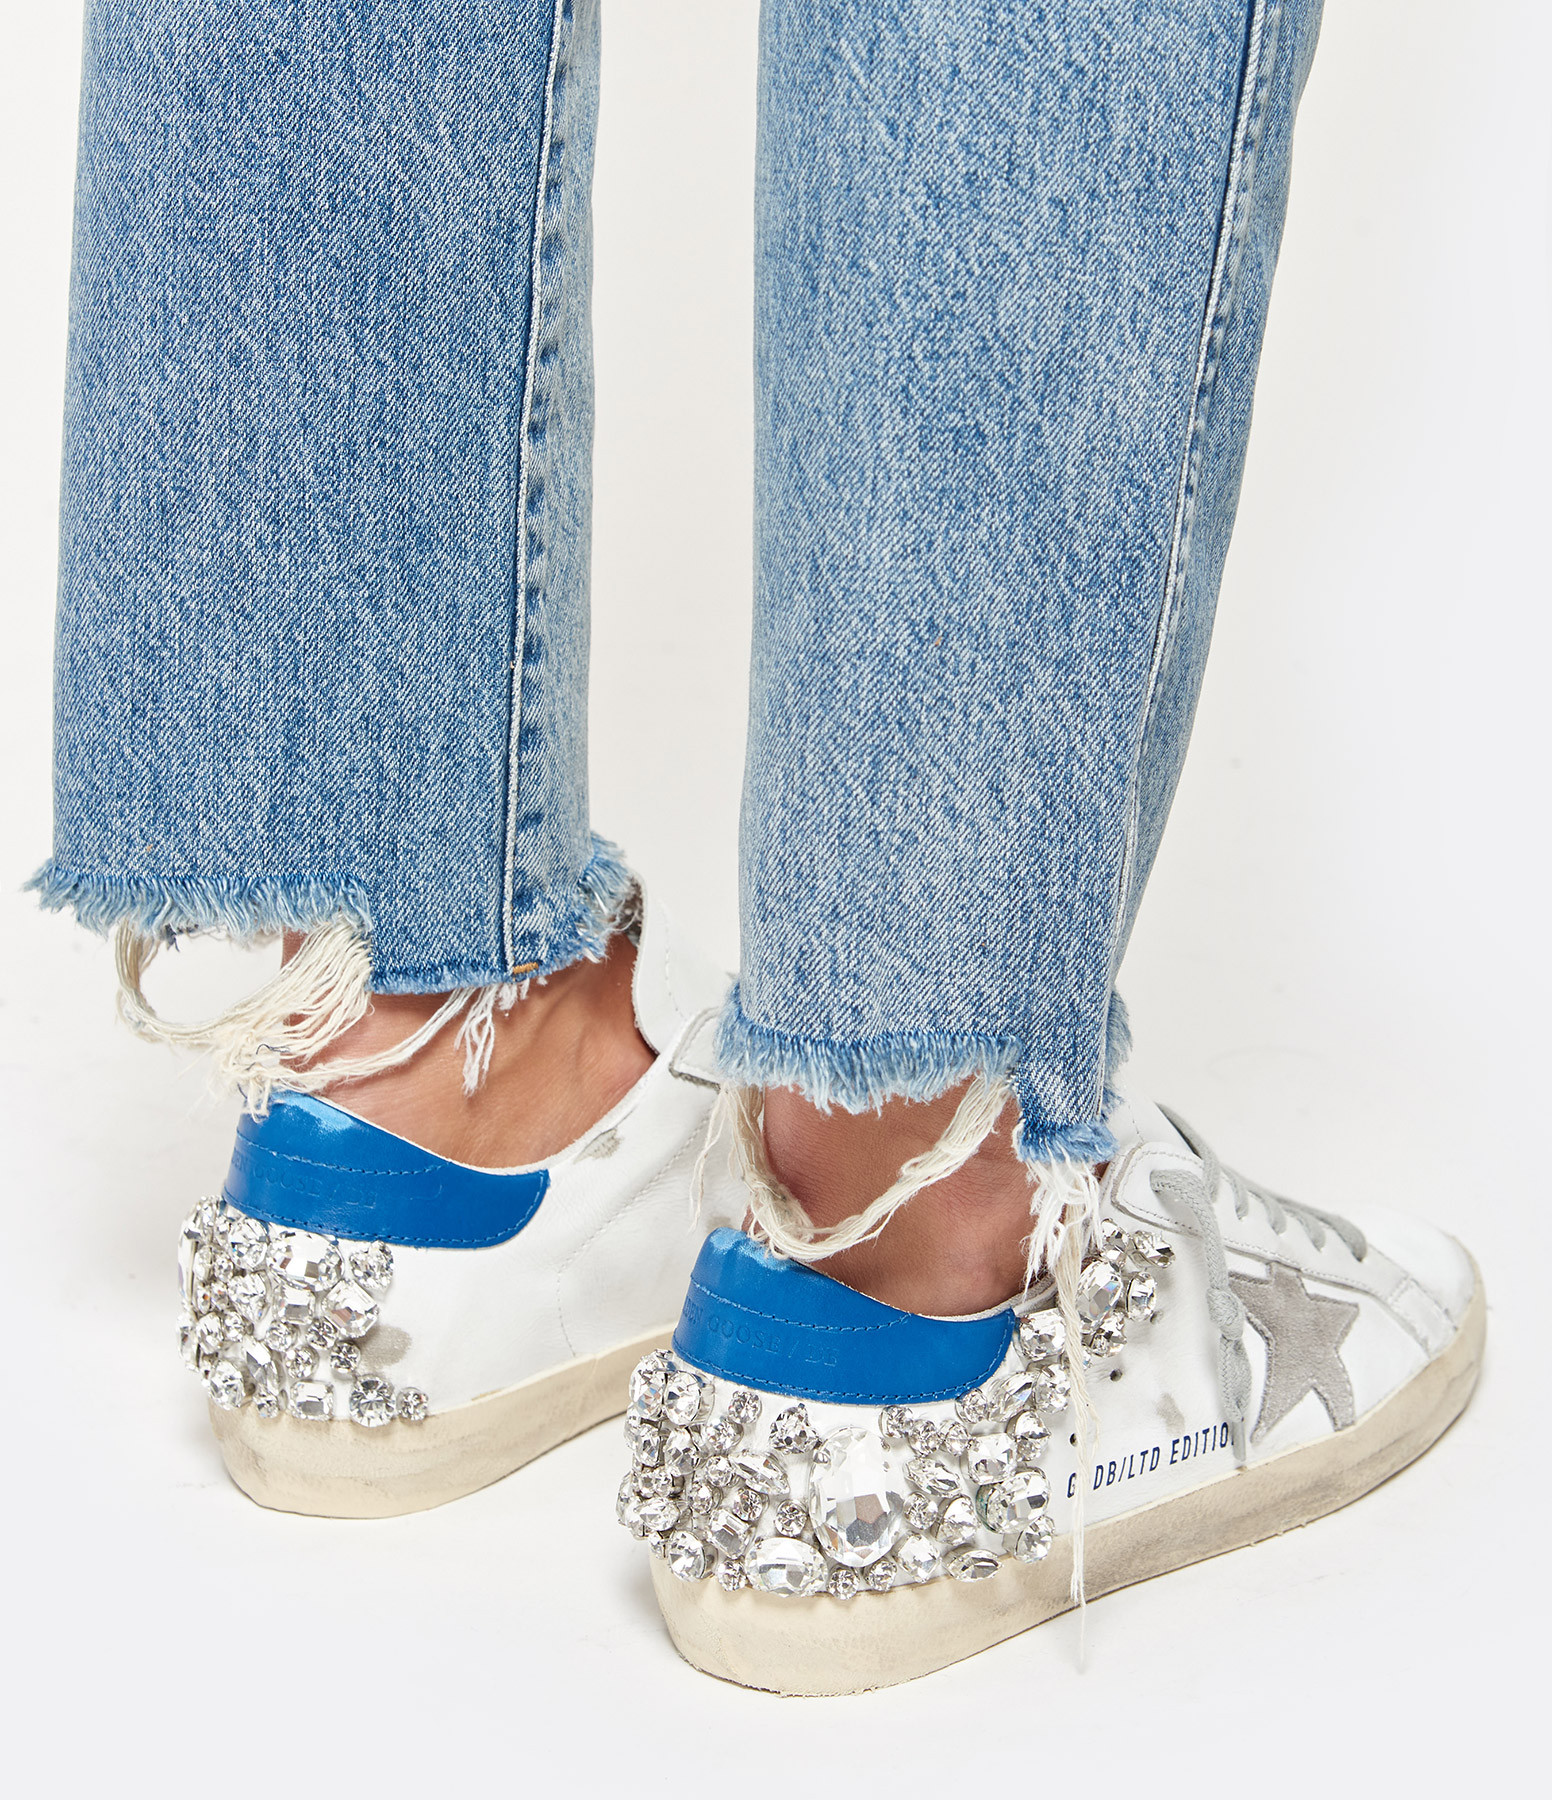 Sneakers Superstar Blue Diamond Cream Sole - GOLDEN GOOSE